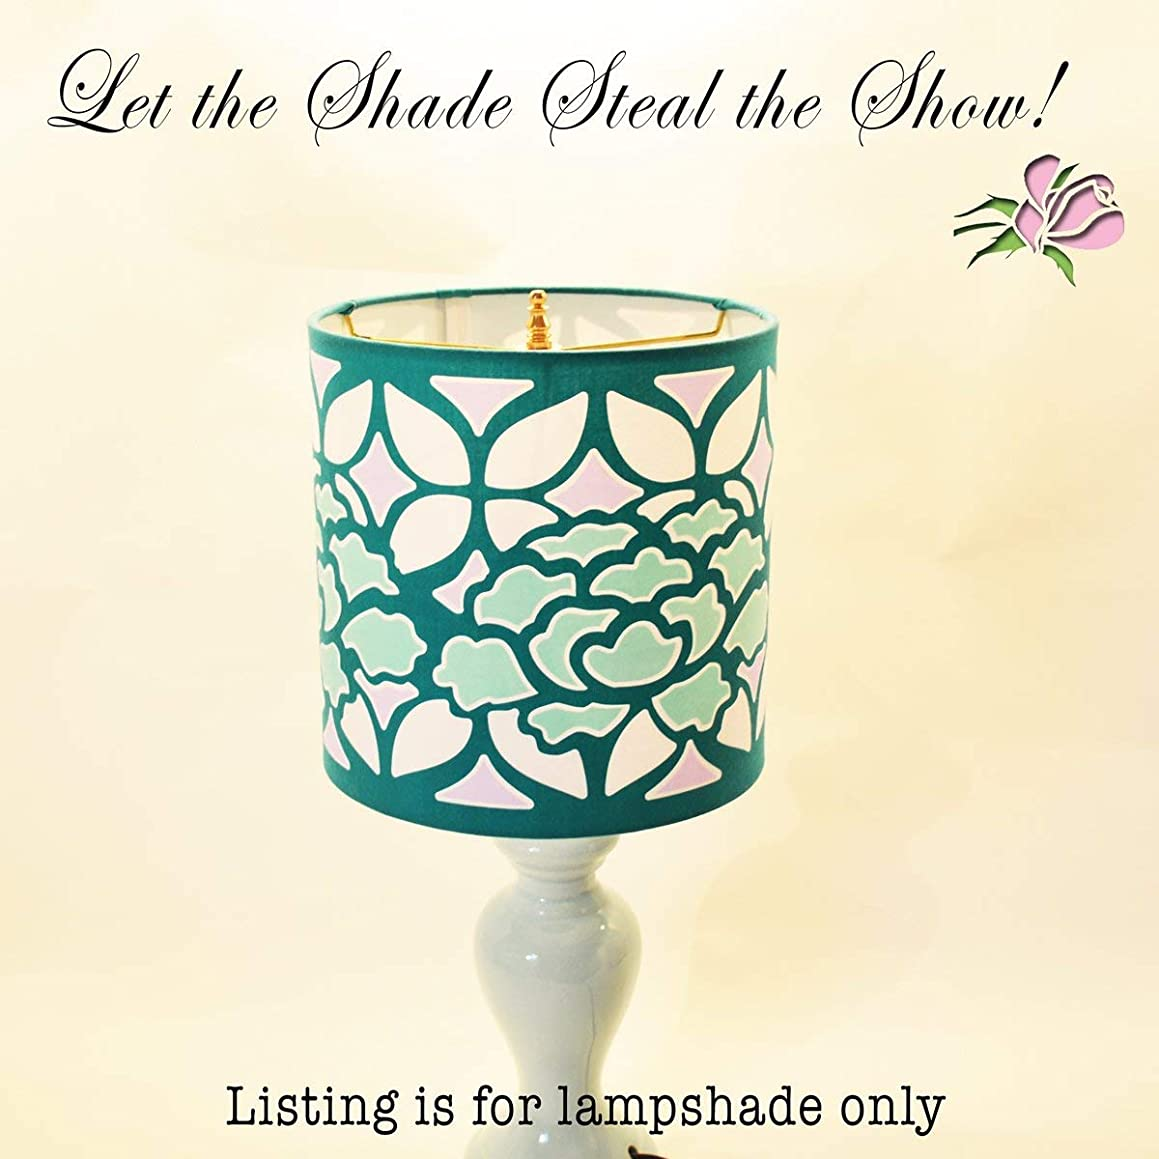 8 inch Teal or Turquoise Fabric Drum Lampshade Featuring Green Peony flowers and lavender Lattice Designed to Look Like Stained Glass